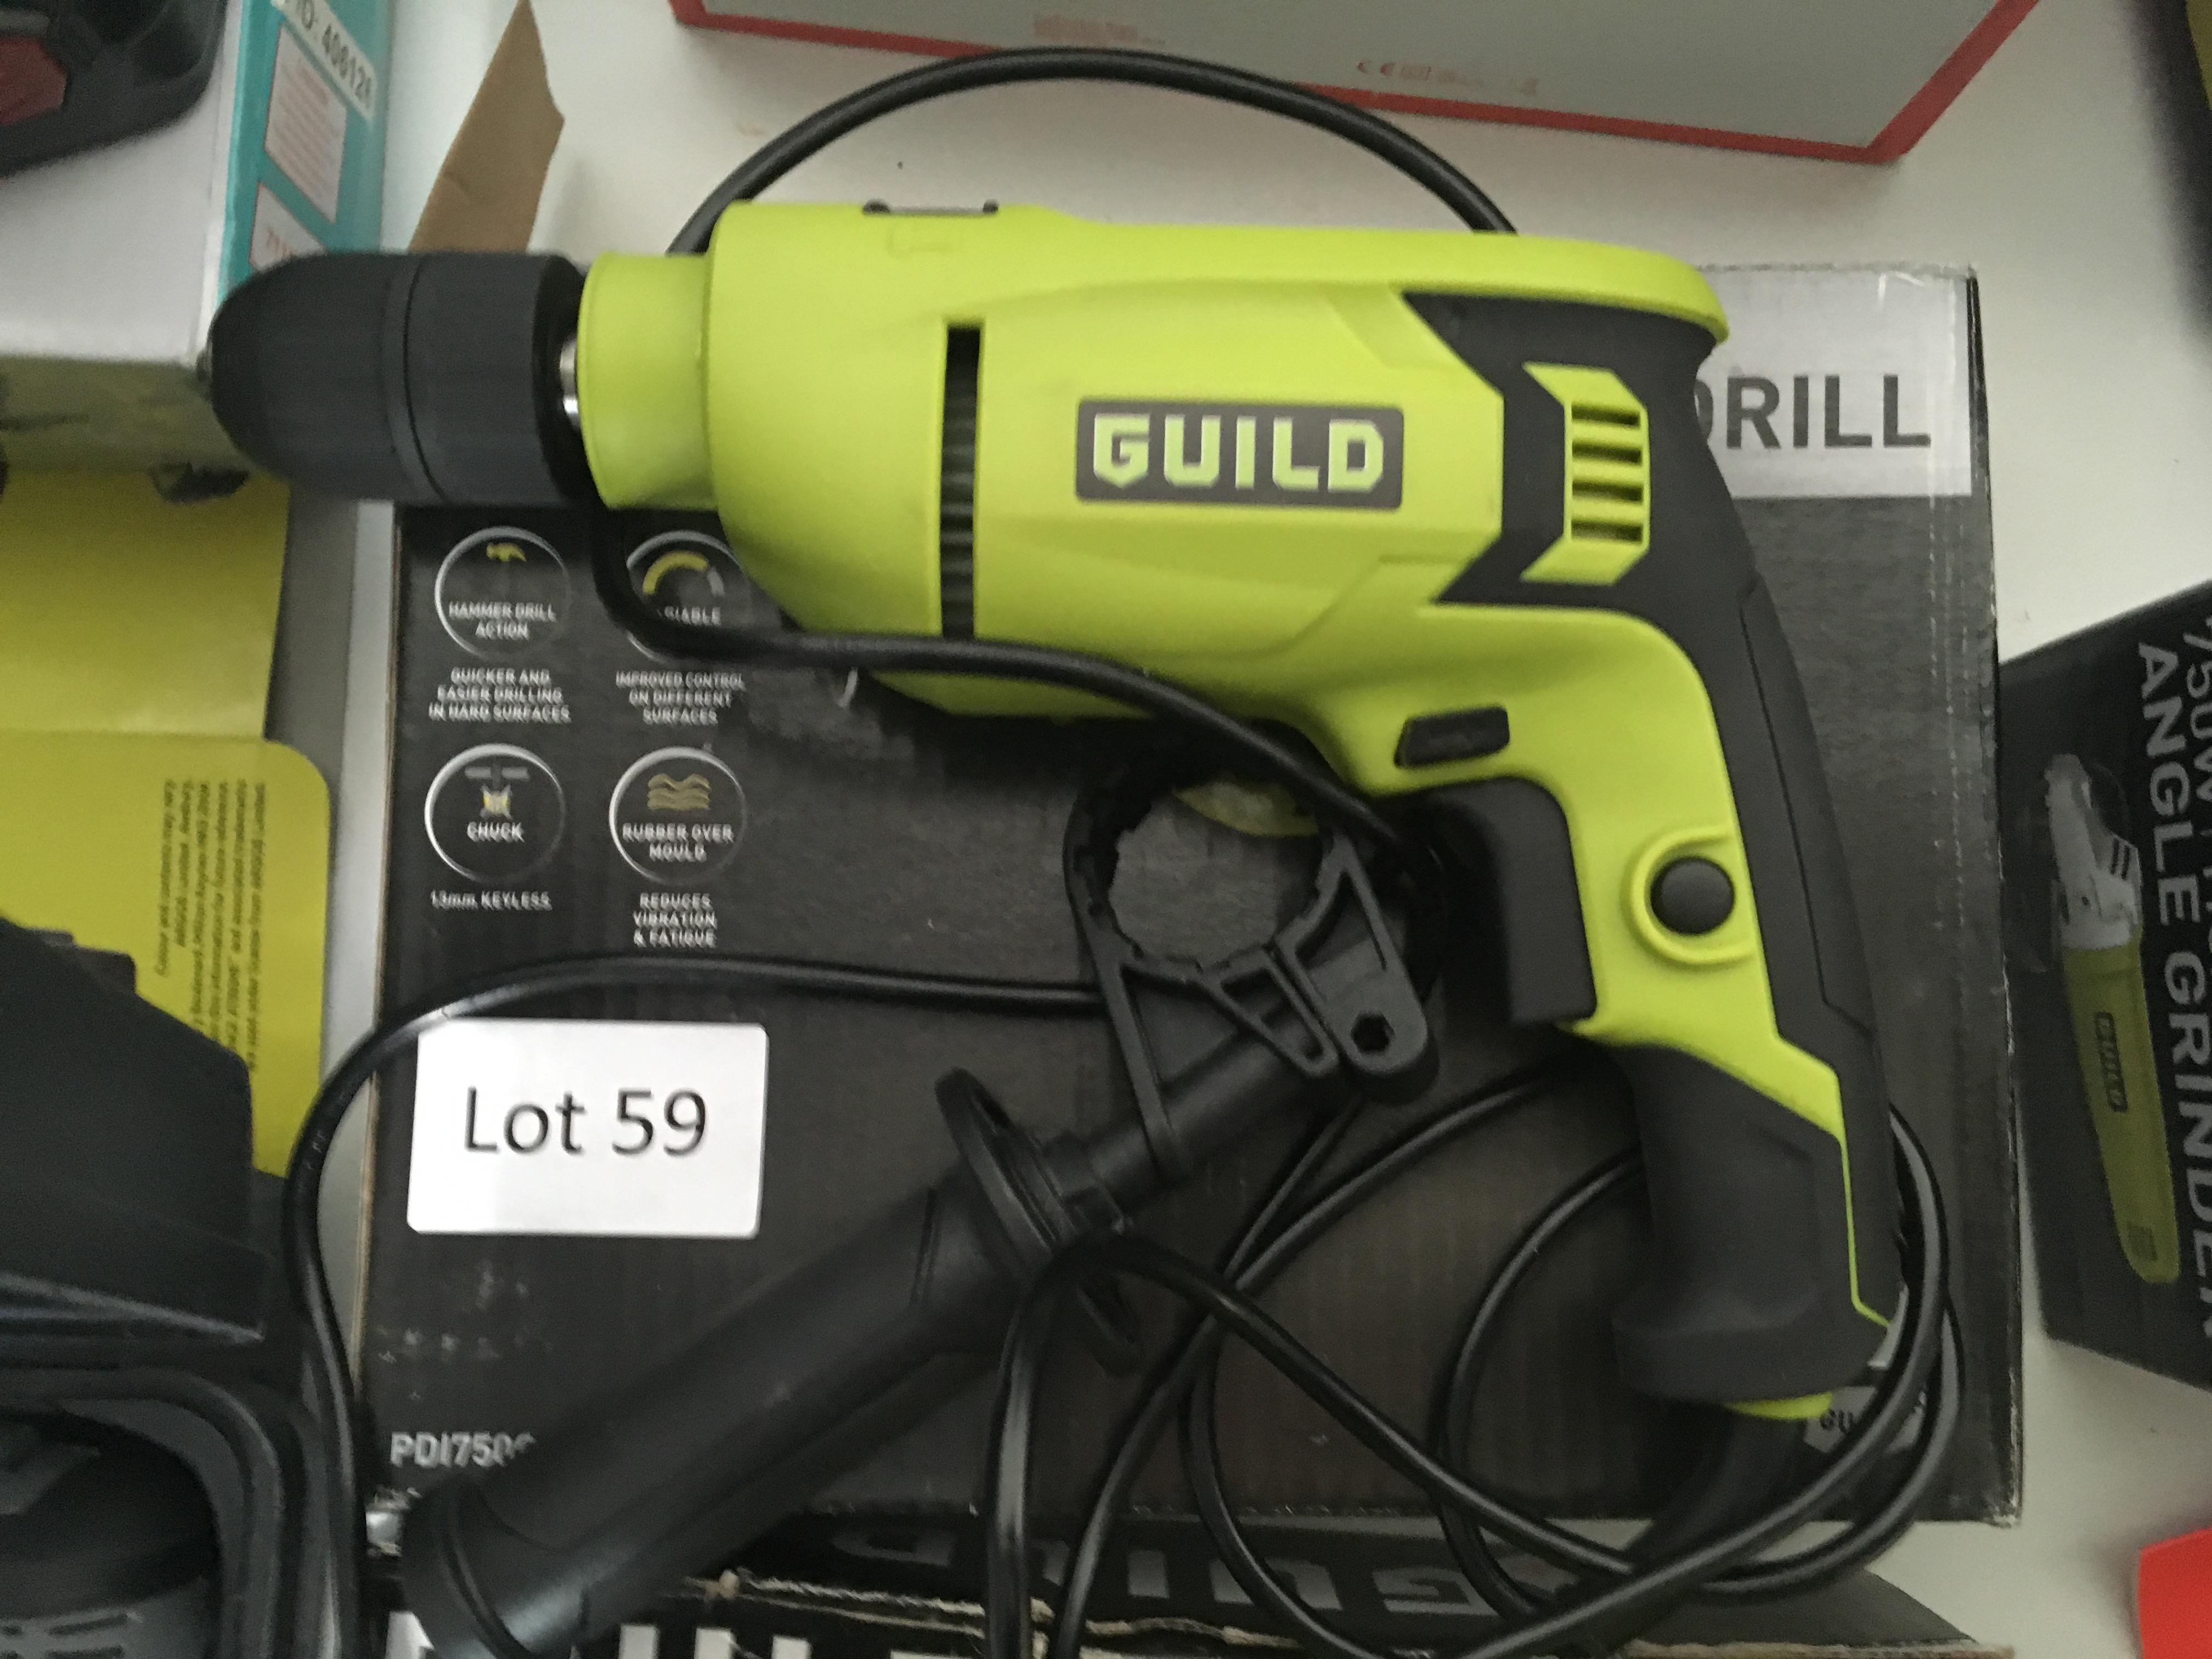 Lot 59 - Guild 750W hammer drill. Working, bad packaging.